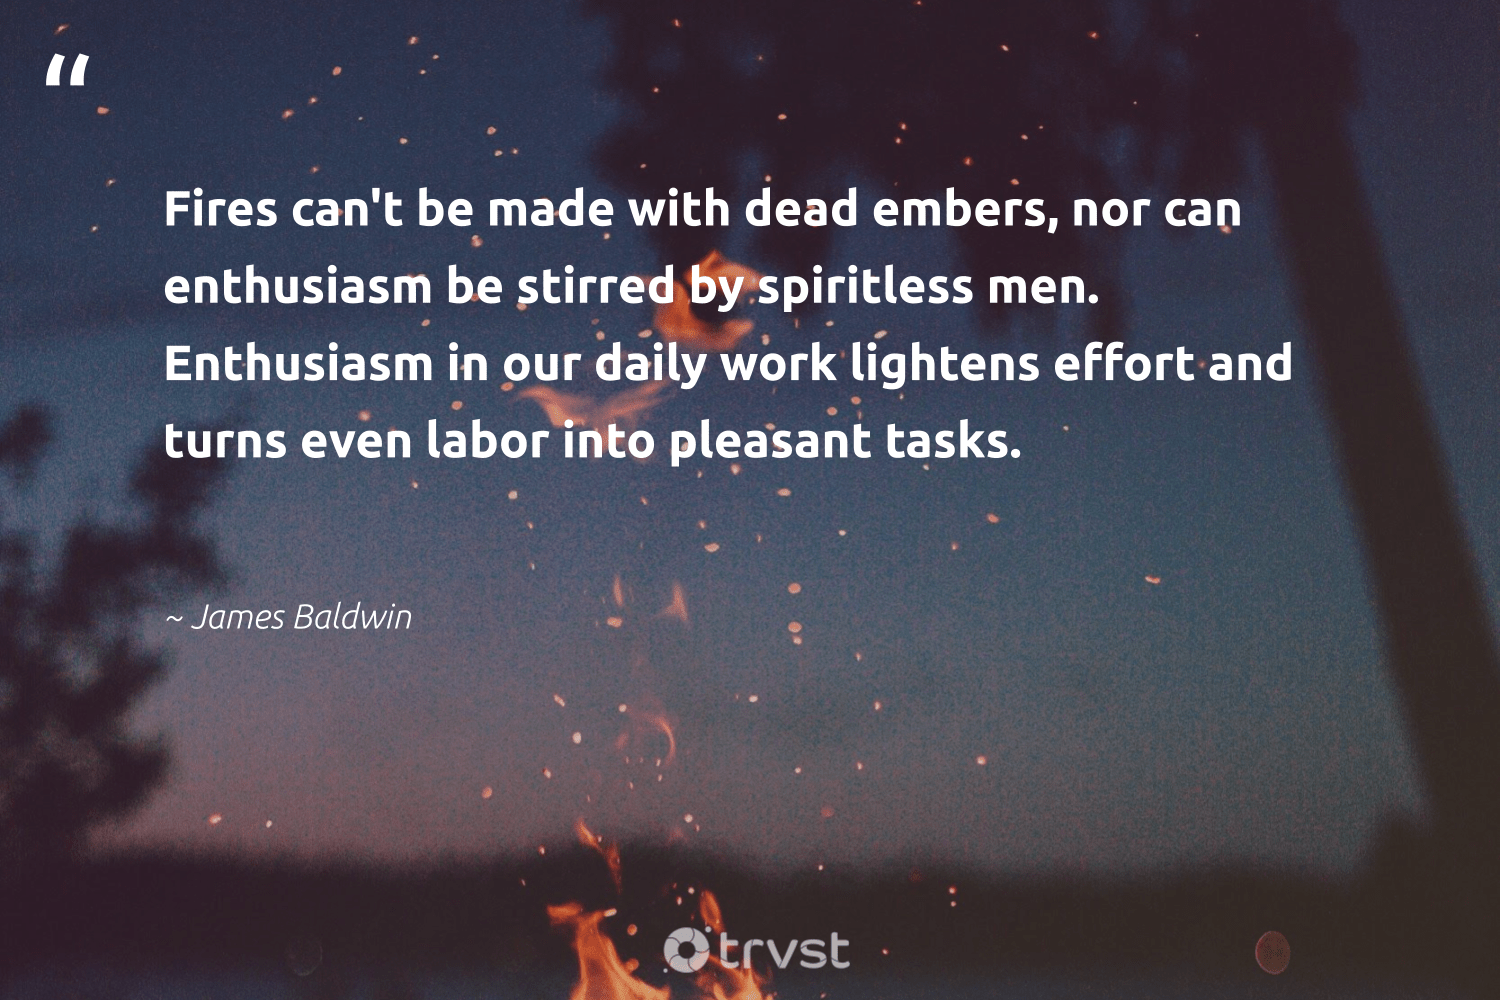 """Fires can't be made with dead embers, nor can enthusiasm be stirred by spiritless men. Enthusiasm in our daily work lightens effort and turns even labor into pleasant tasks.""  - James Baldwin #trvst #quotes #begreat #collectiveaction #futureofwork #bethechange #softskills #socialchange #nevergiveup #changetheworld #impact #ecoconscious"